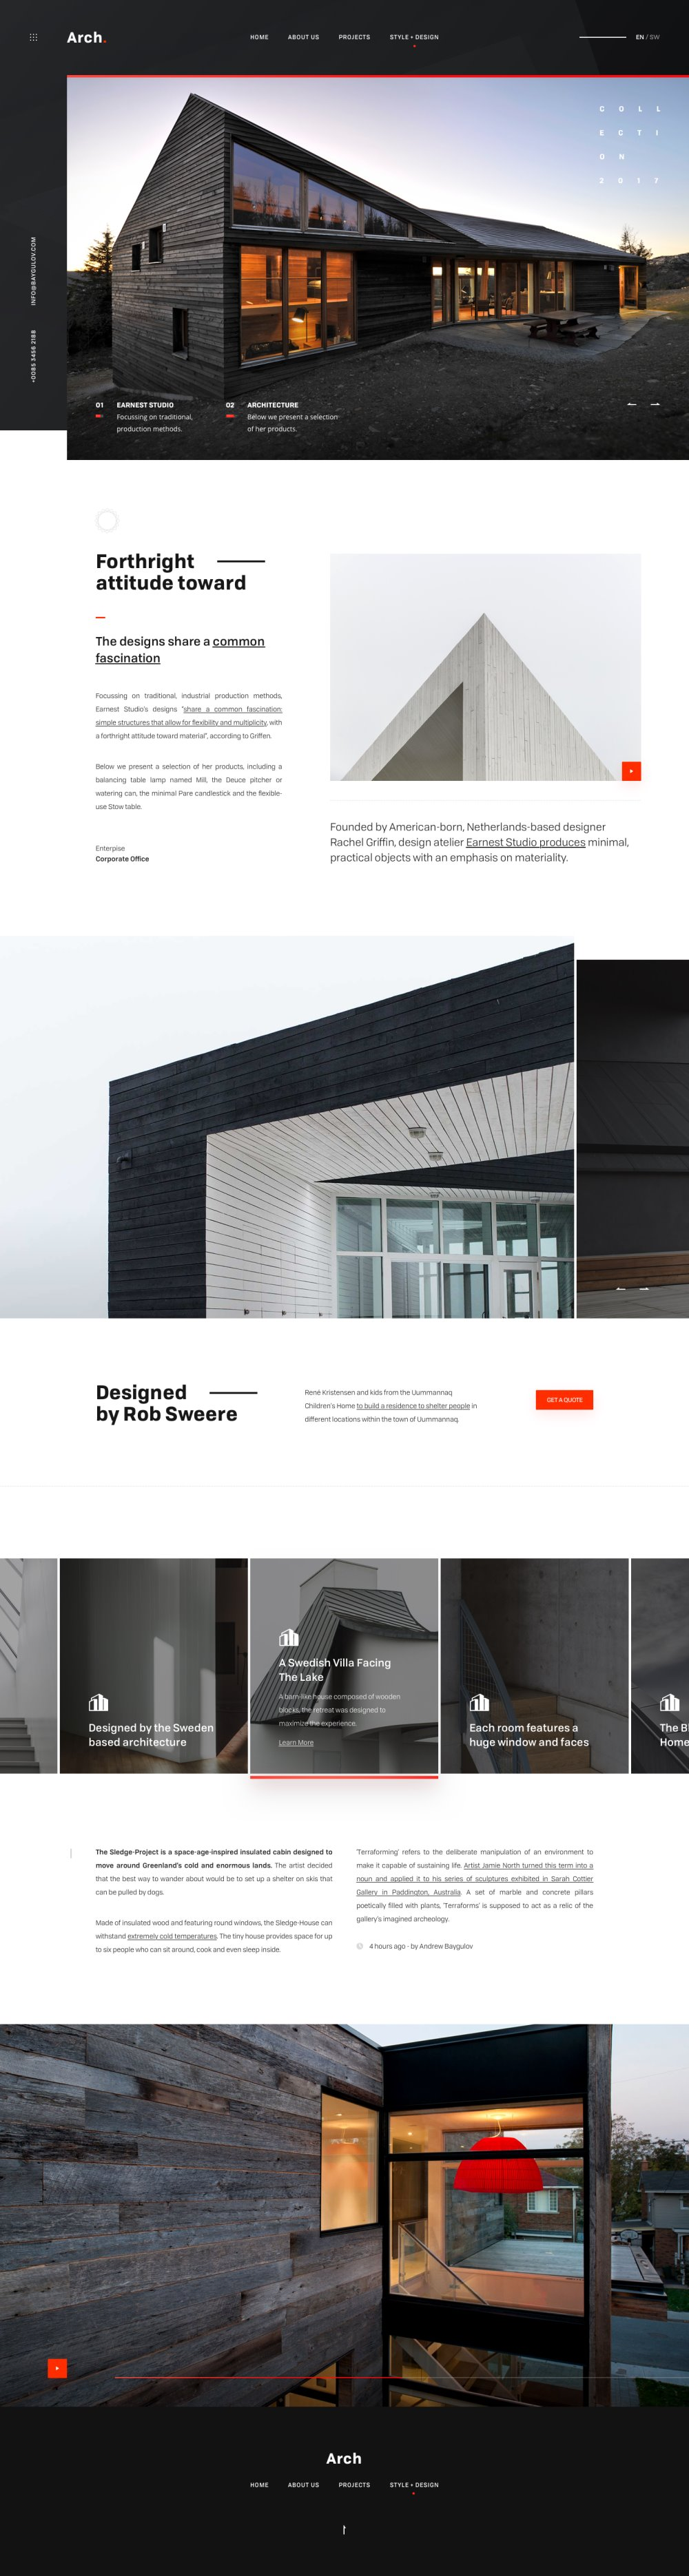 Best Architecture Website Designs